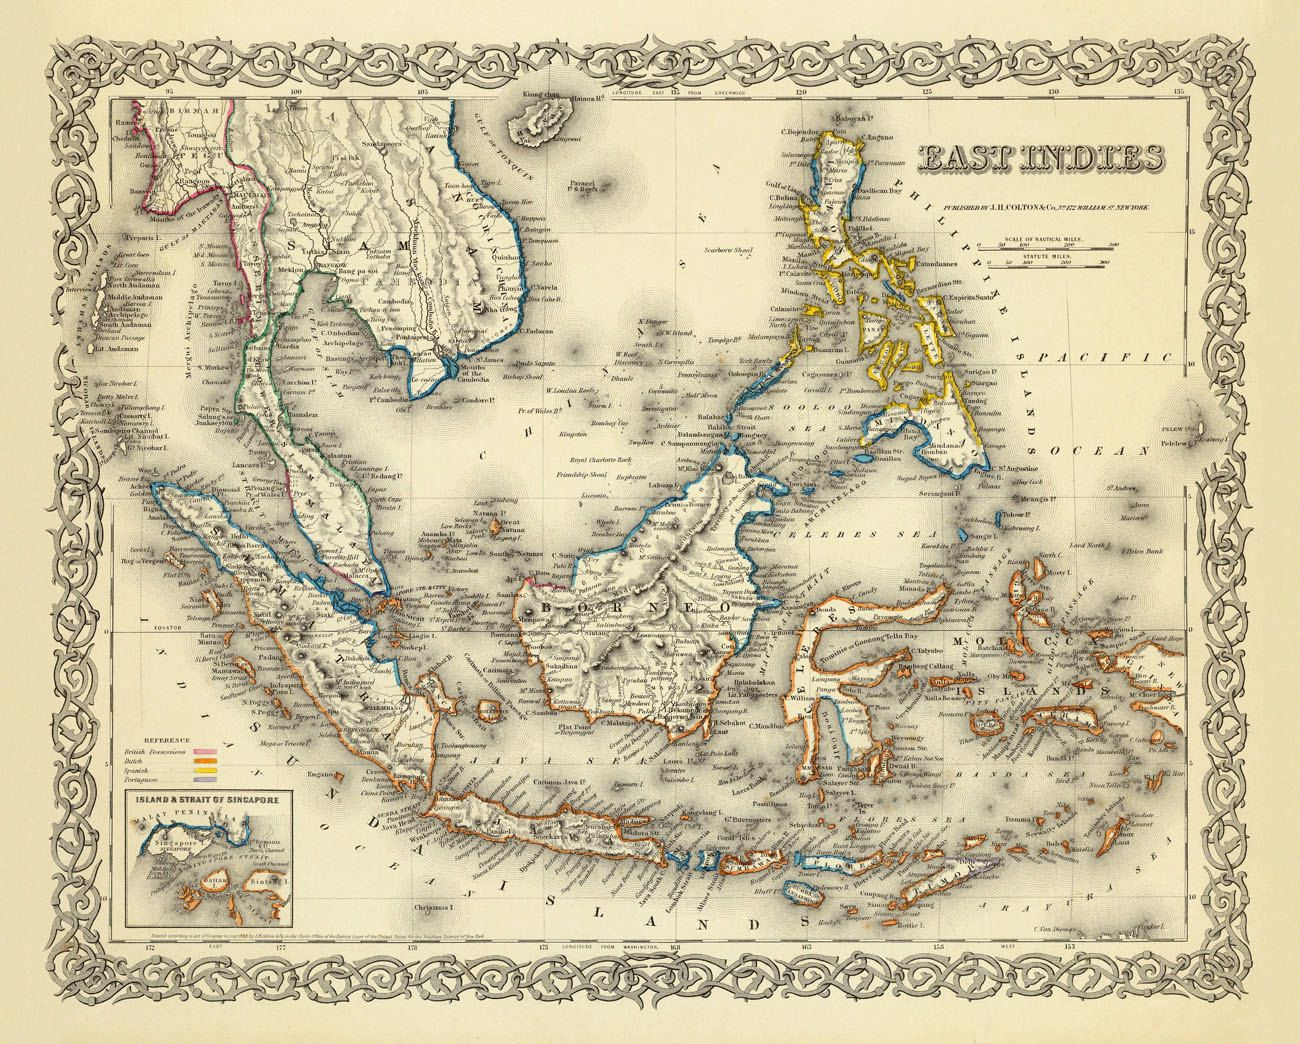 Old Map Compass Designs Google Search Old Maps Pinterest - Antiques us maps with compass